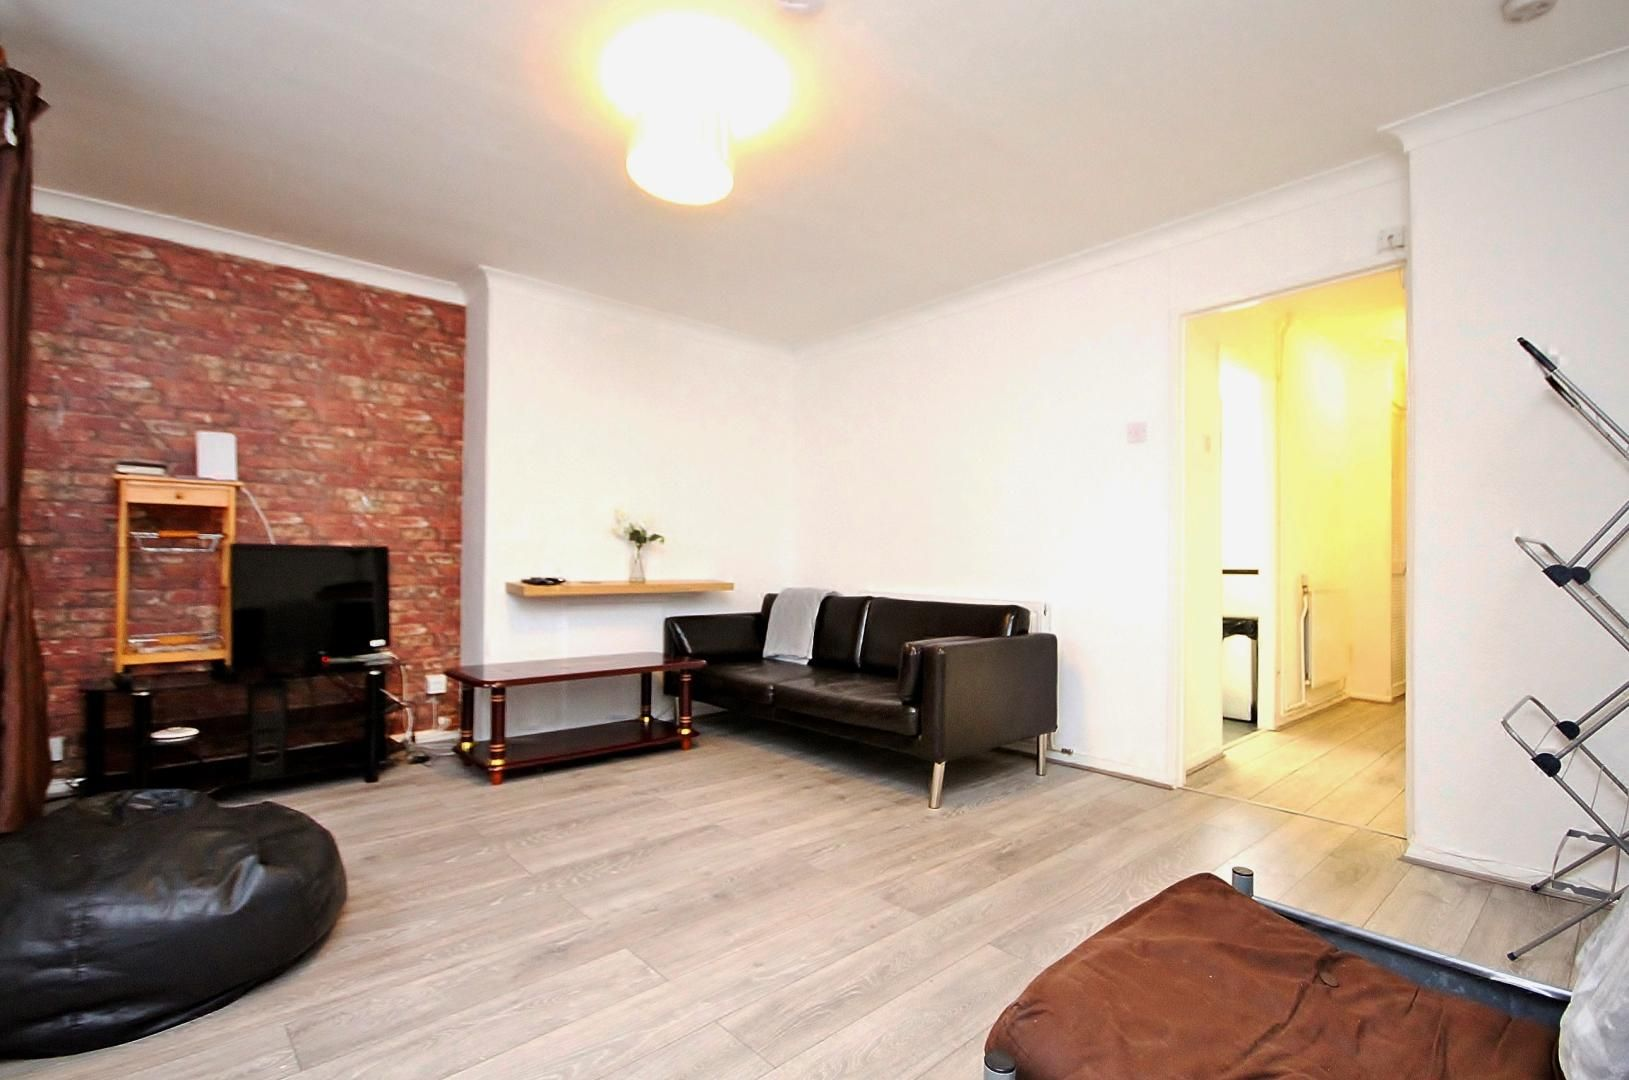 3 bed flat to rent in Three Colt Street, E14